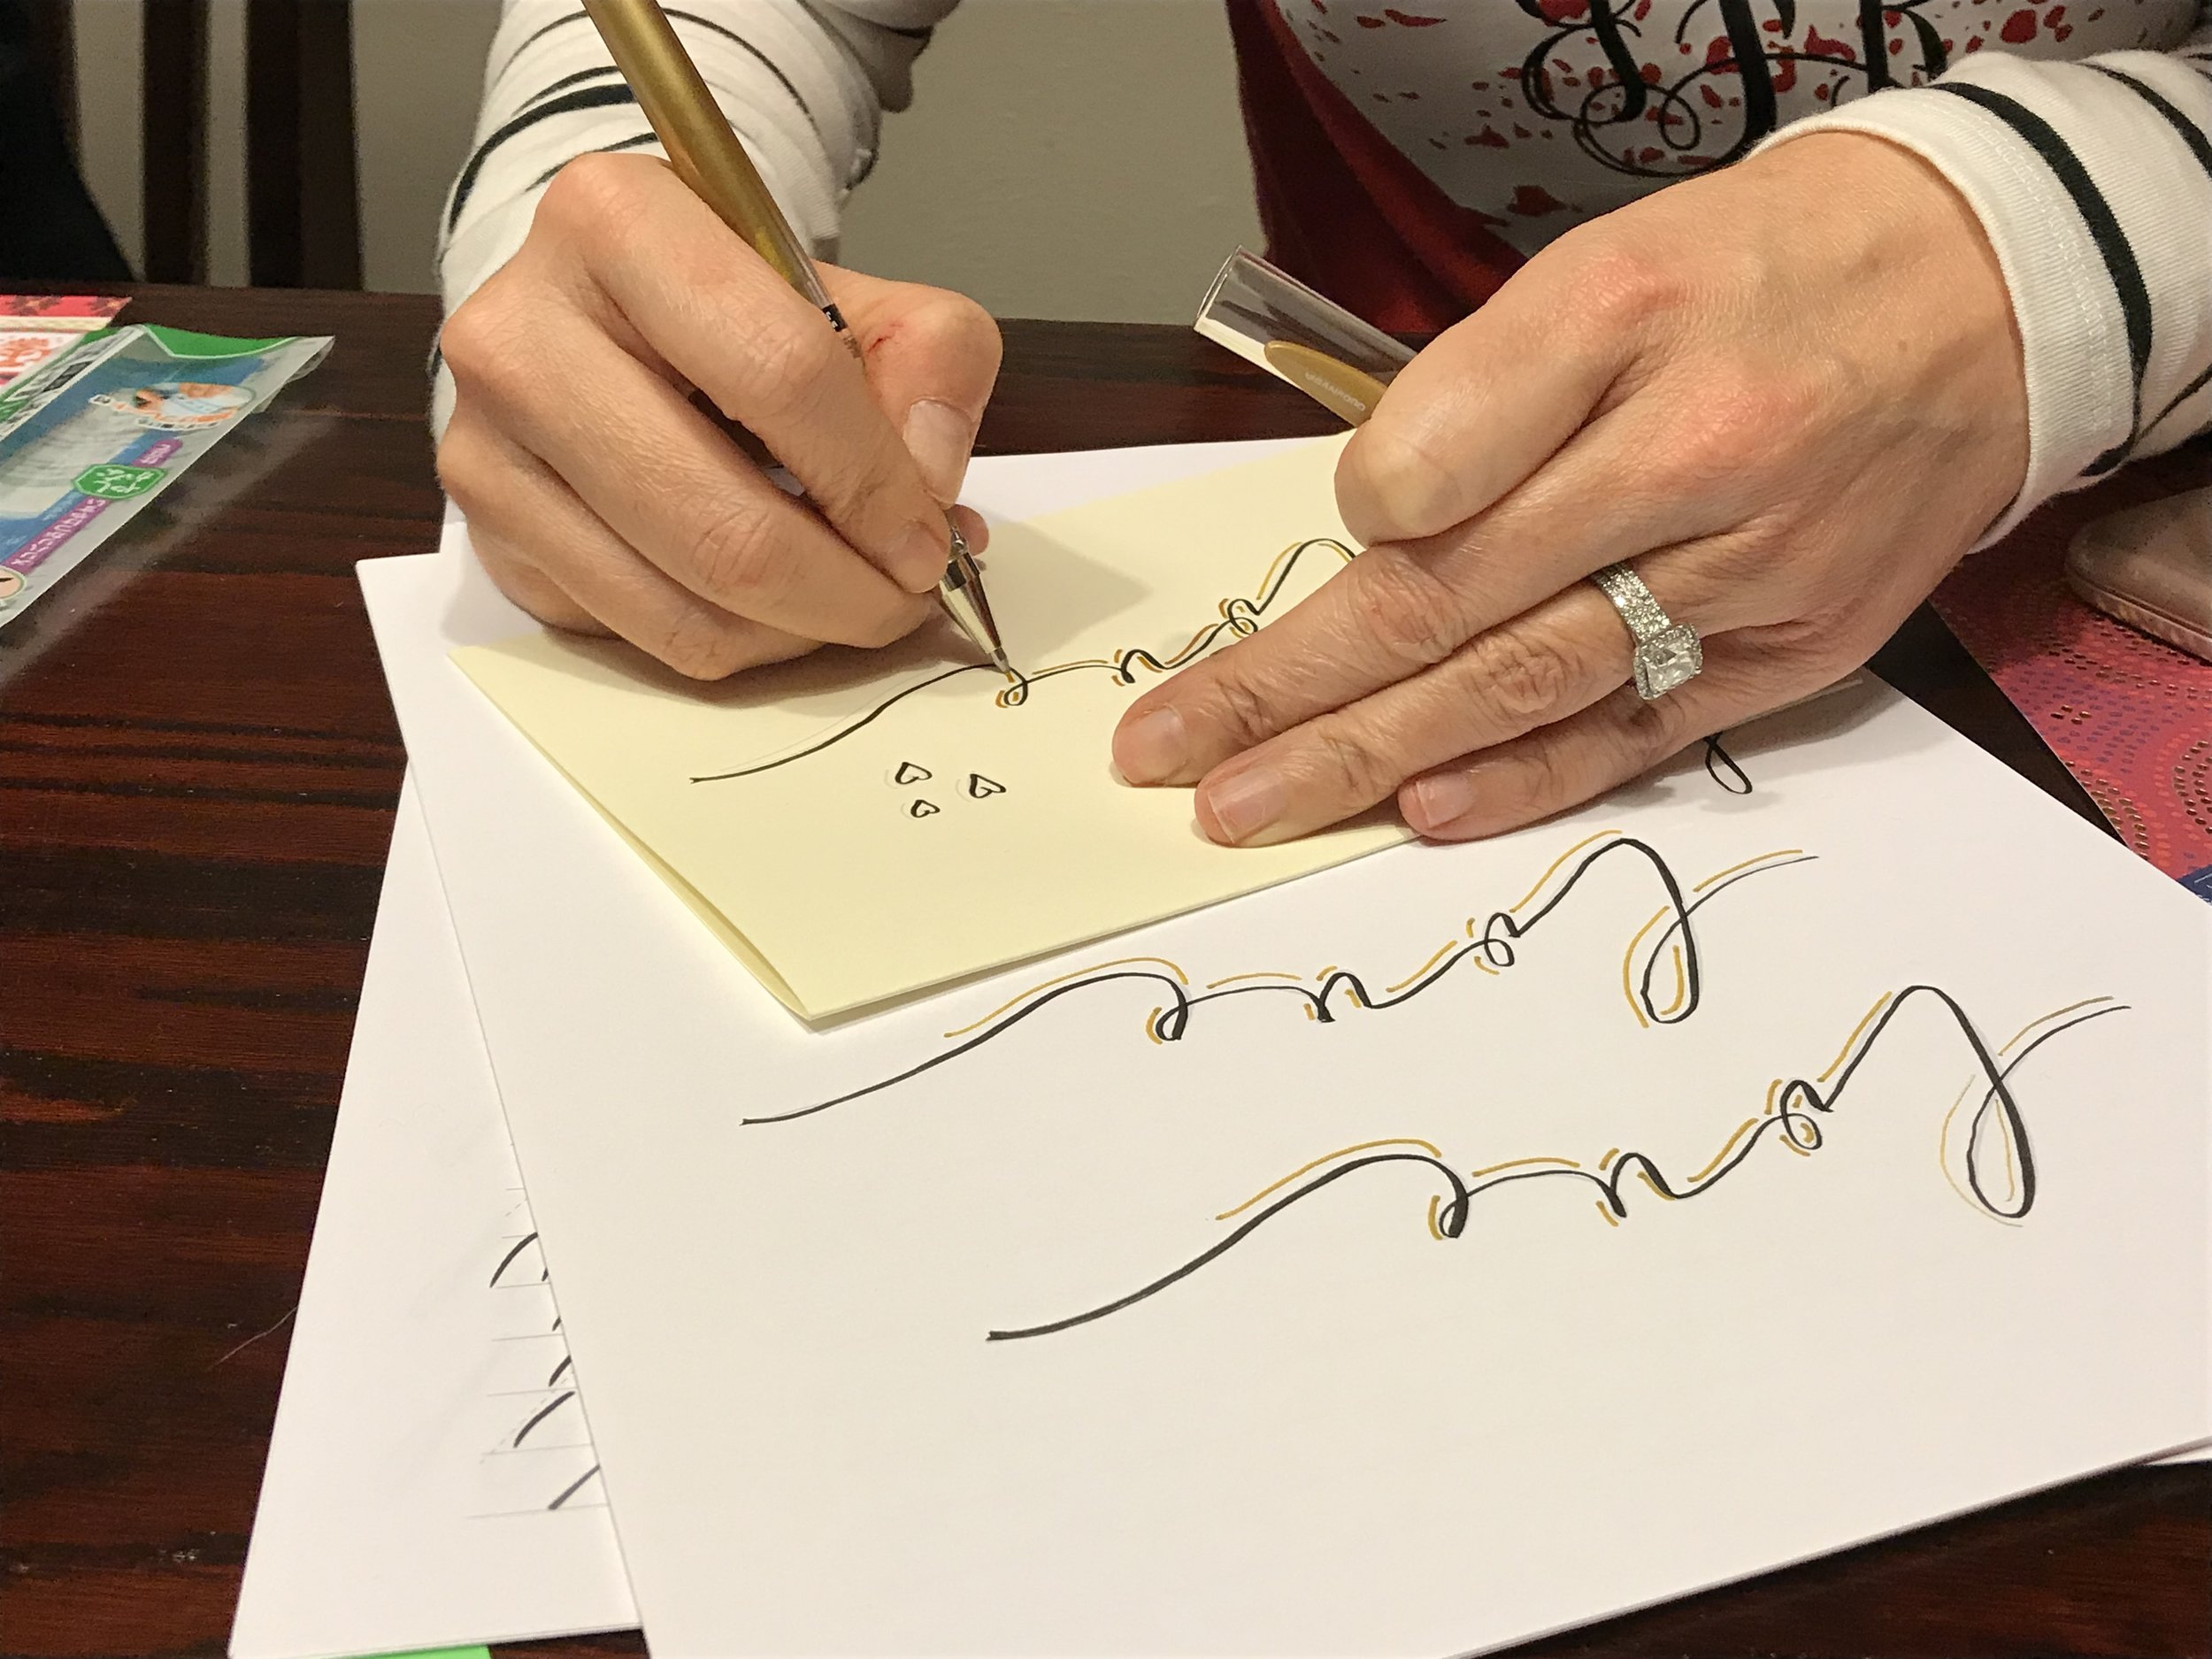 class participant practicing making love on a card in calligraphy